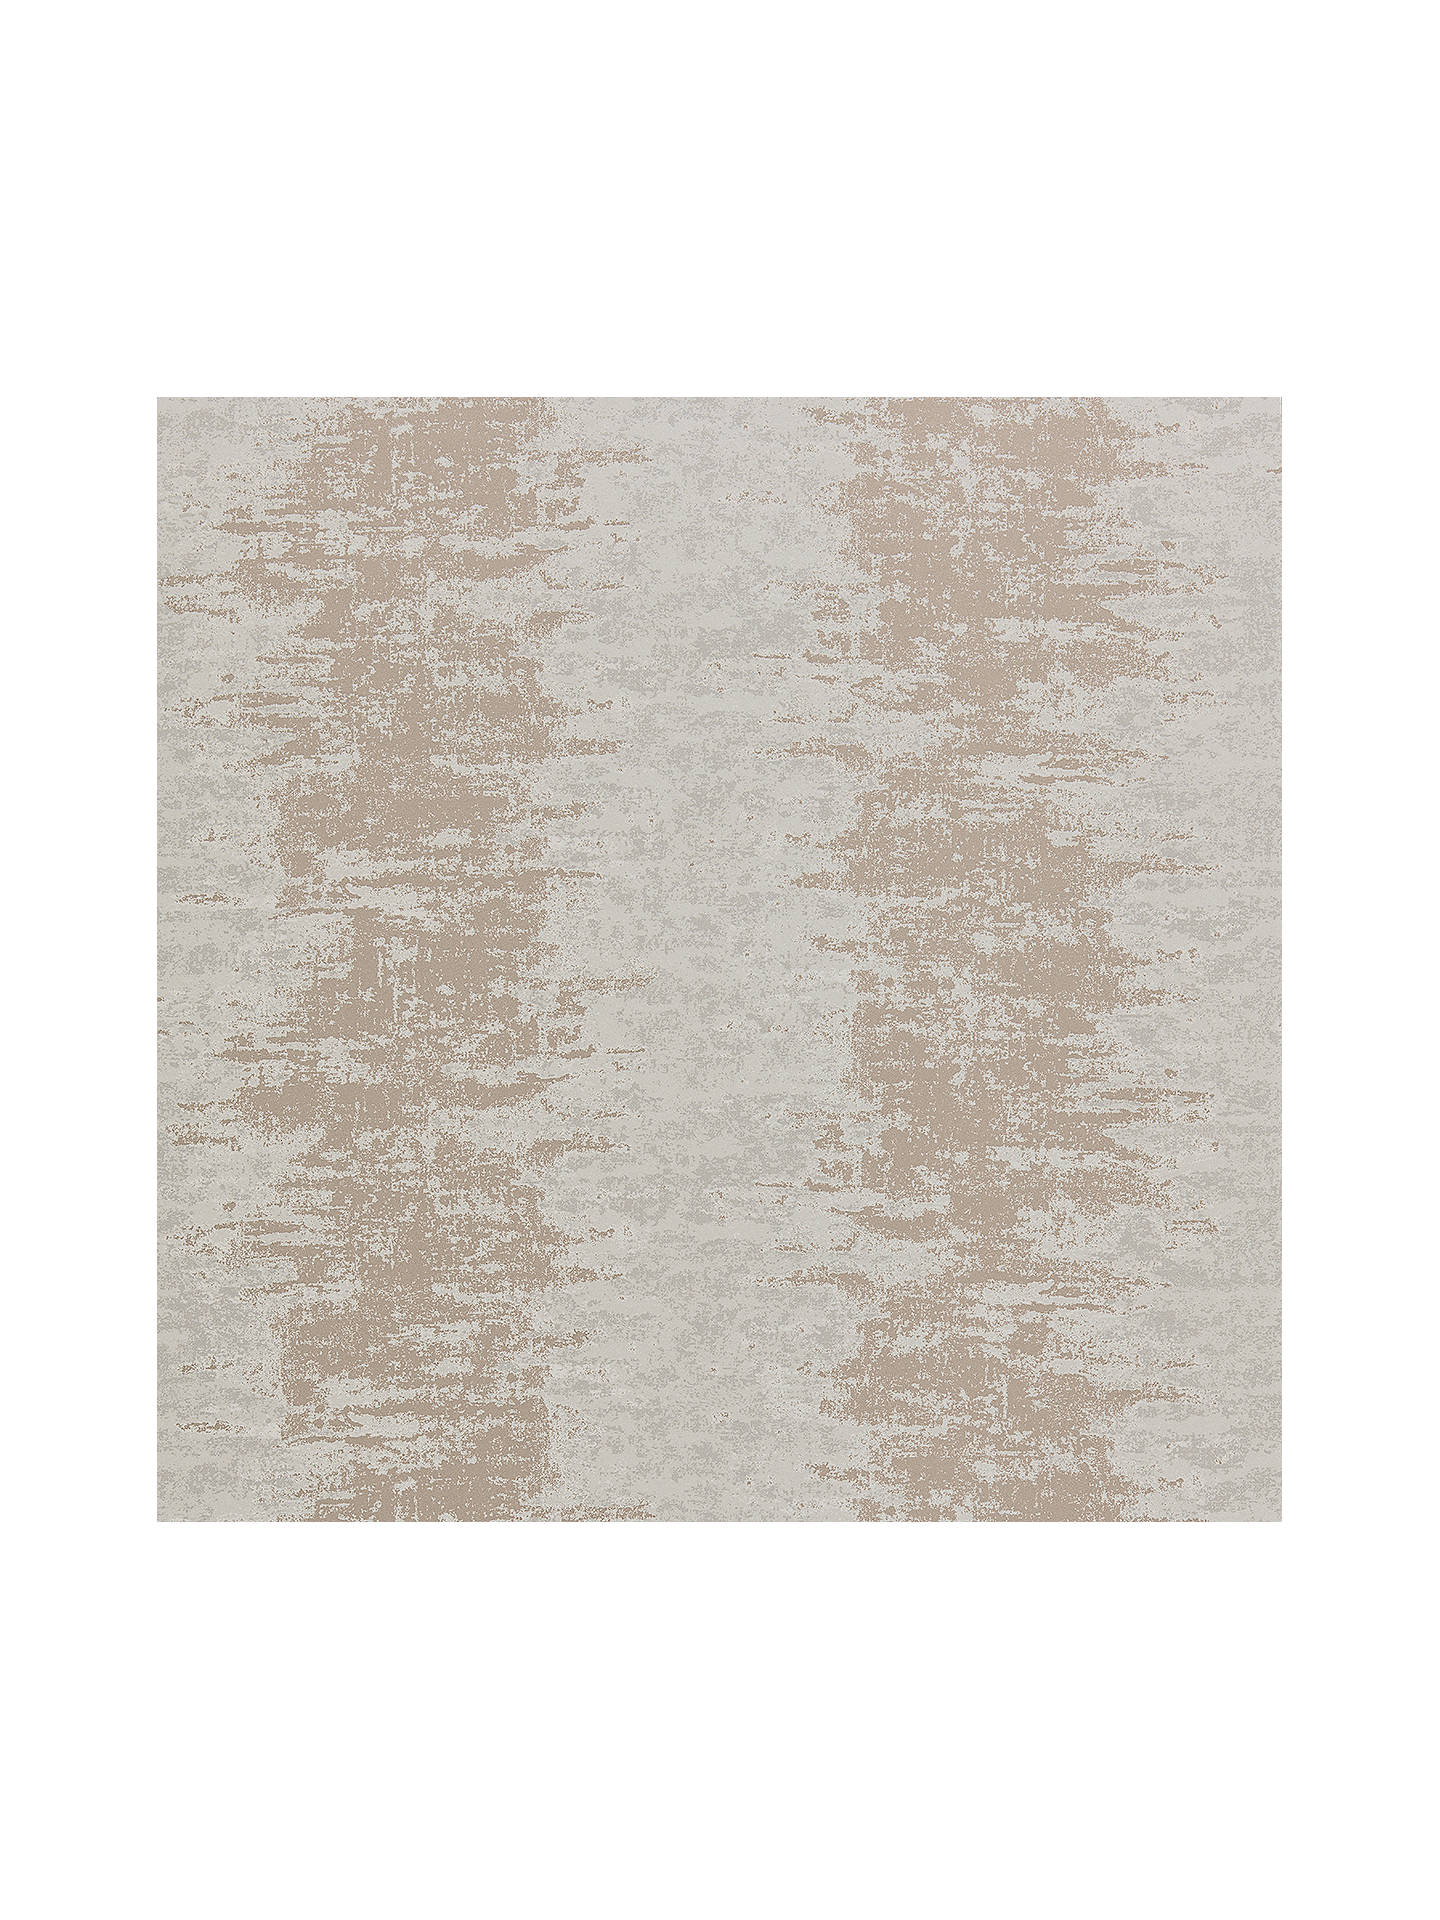 Buy Anthology Pumice Wallpaper, Pebble / Old Rose 111329 Online at johnlewis.com